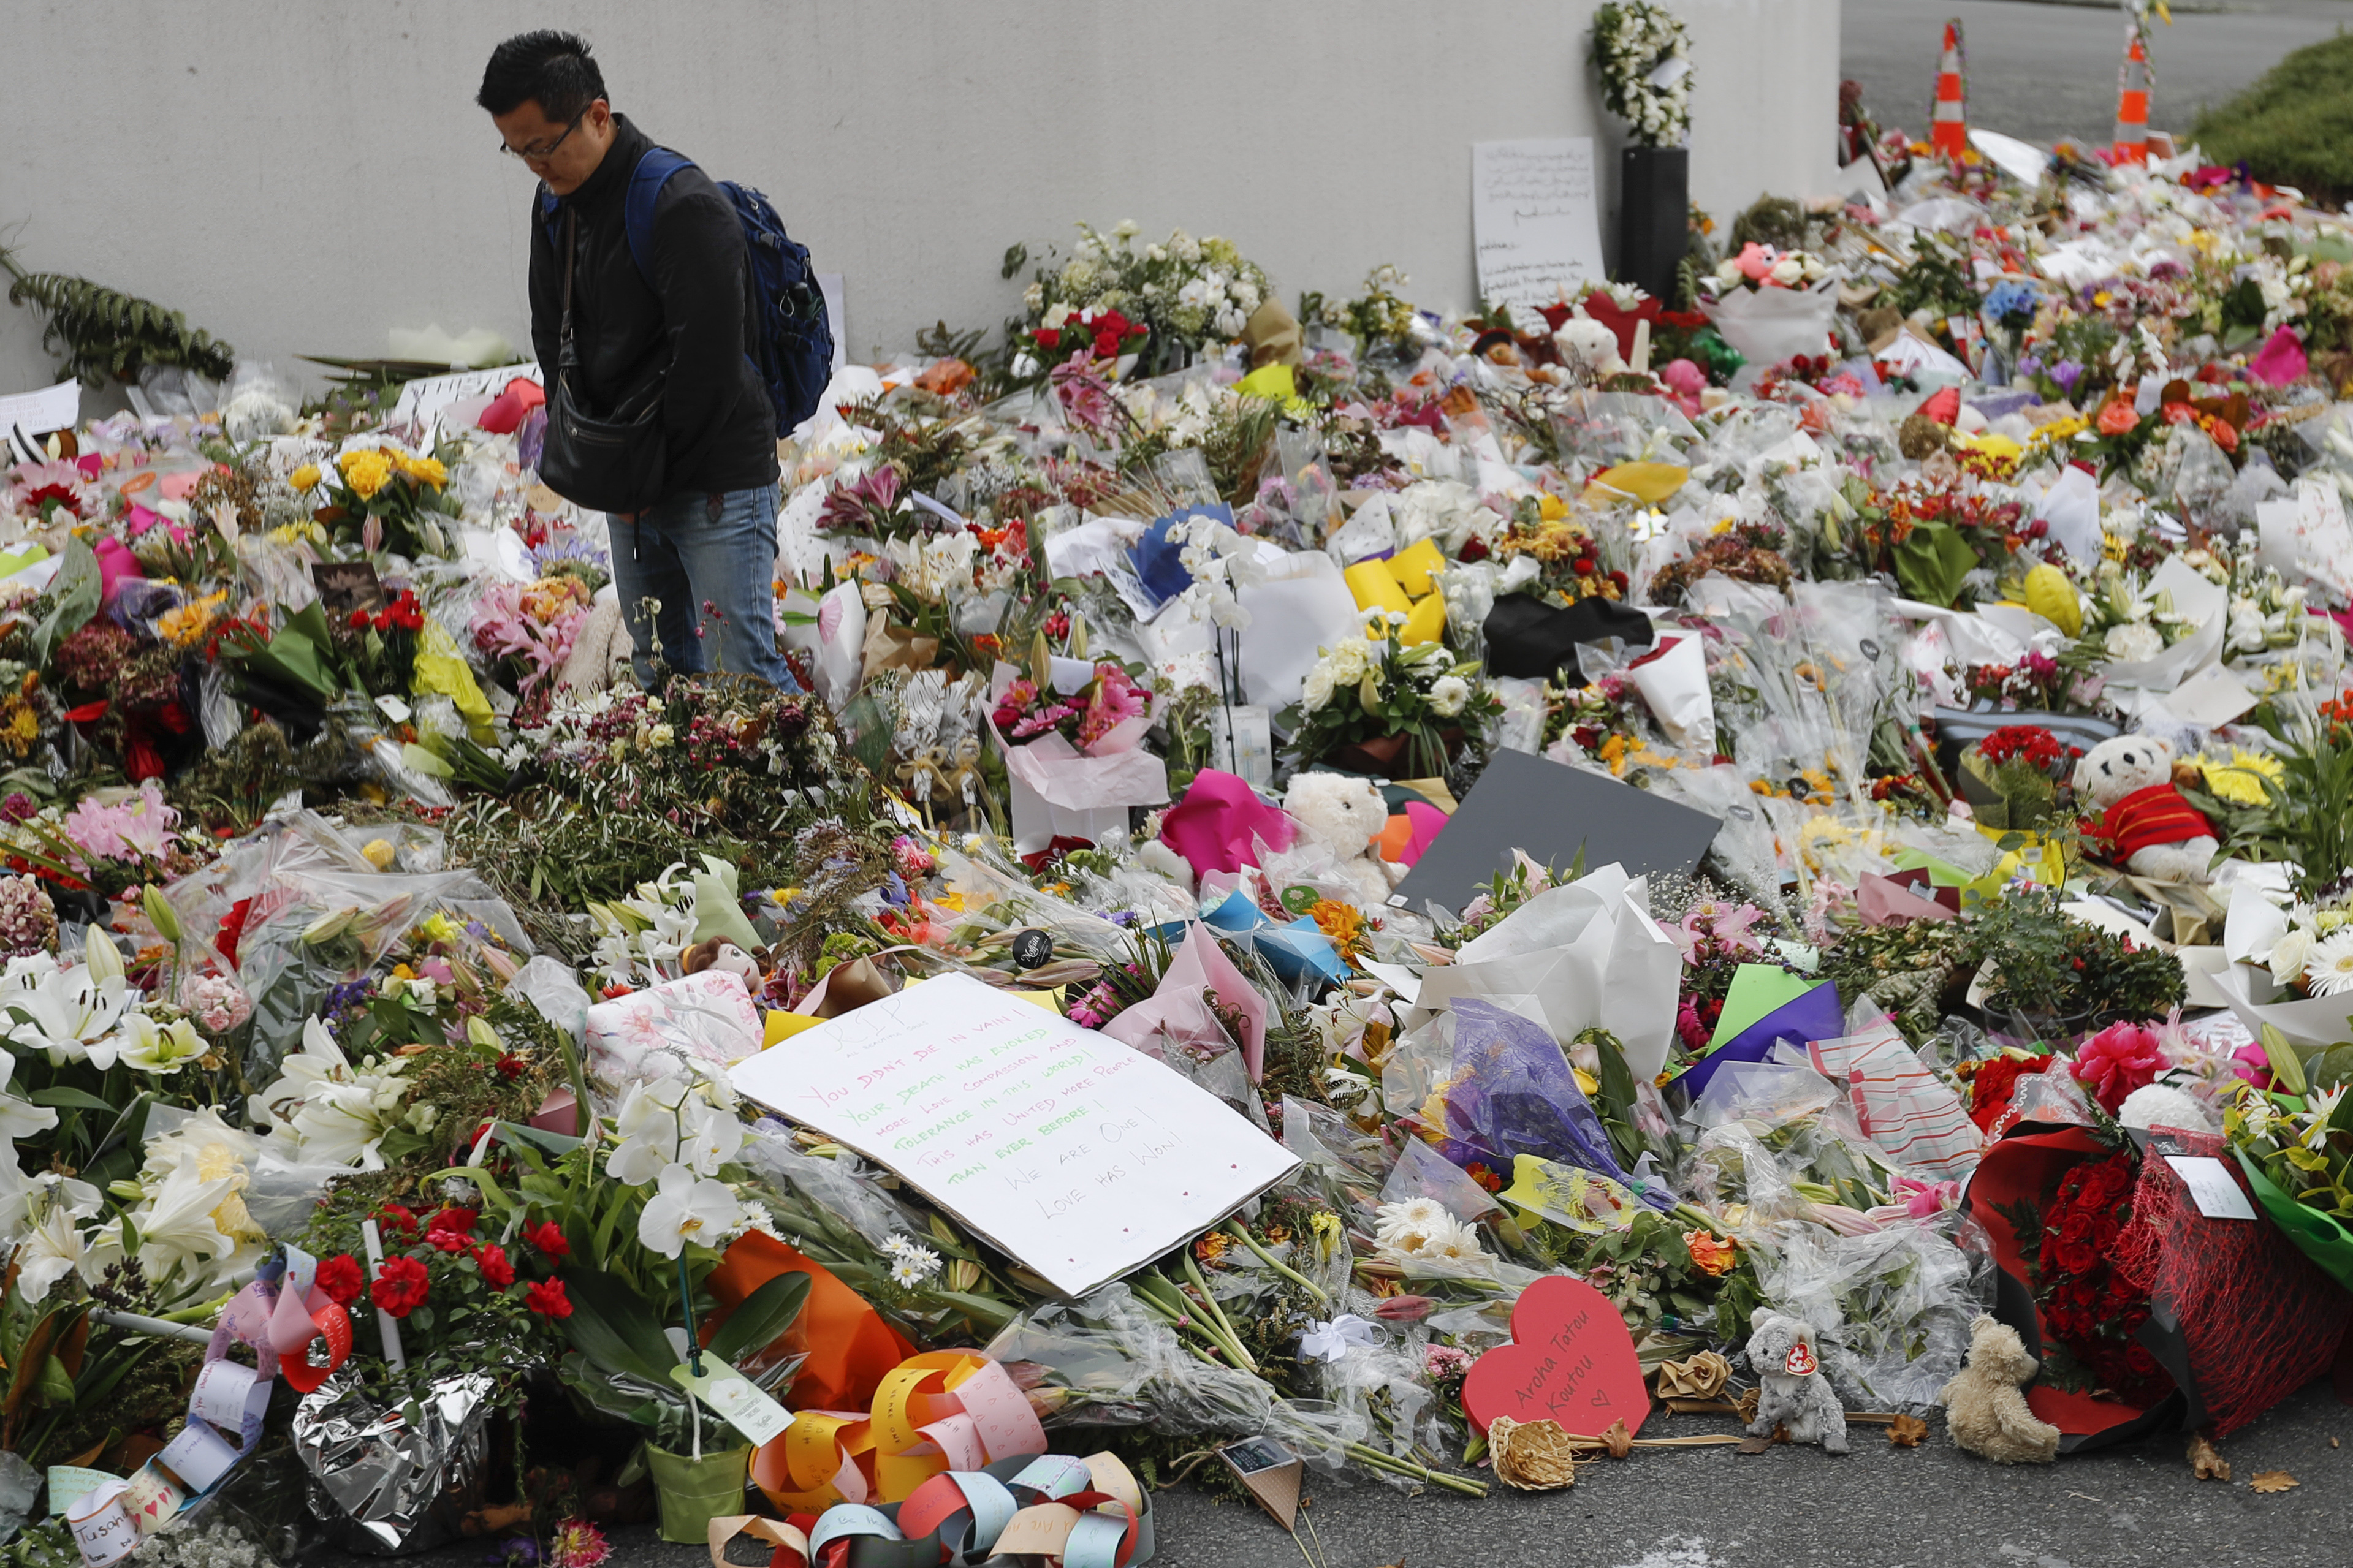 The Latest: New Zealand bans all assault weapons immediately